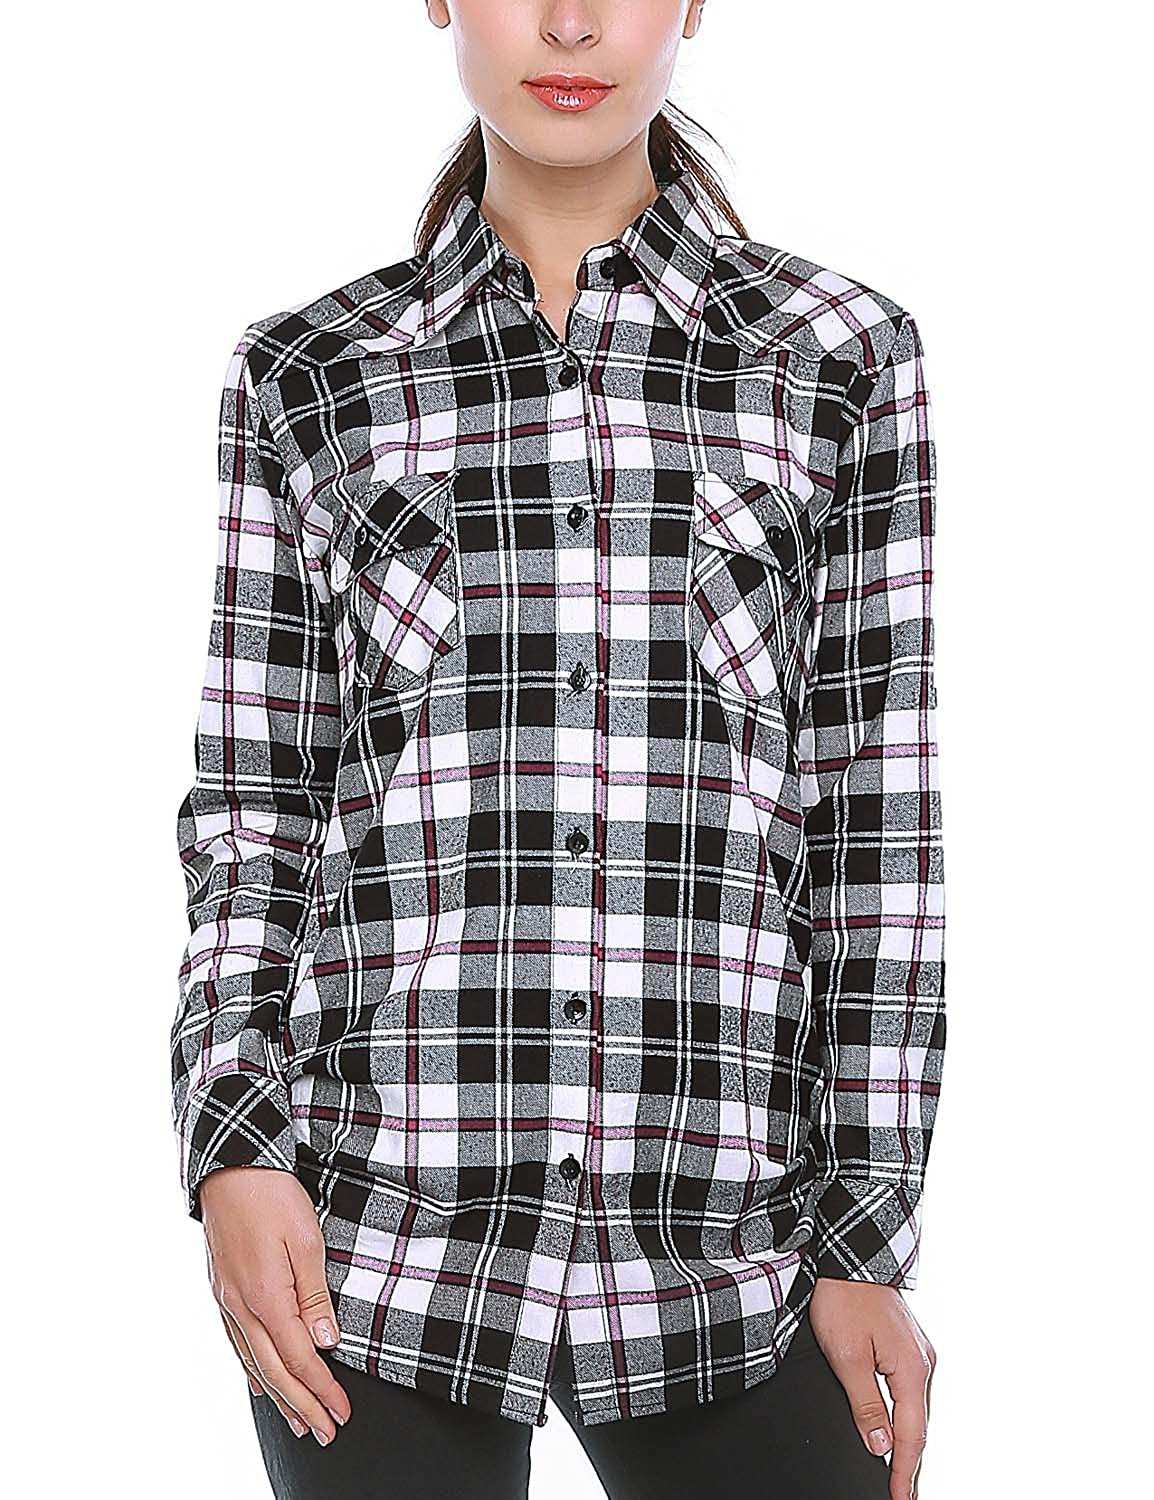 2021 Checks 5 Match Women's Long Sleeve Flannel Plaid Shirt